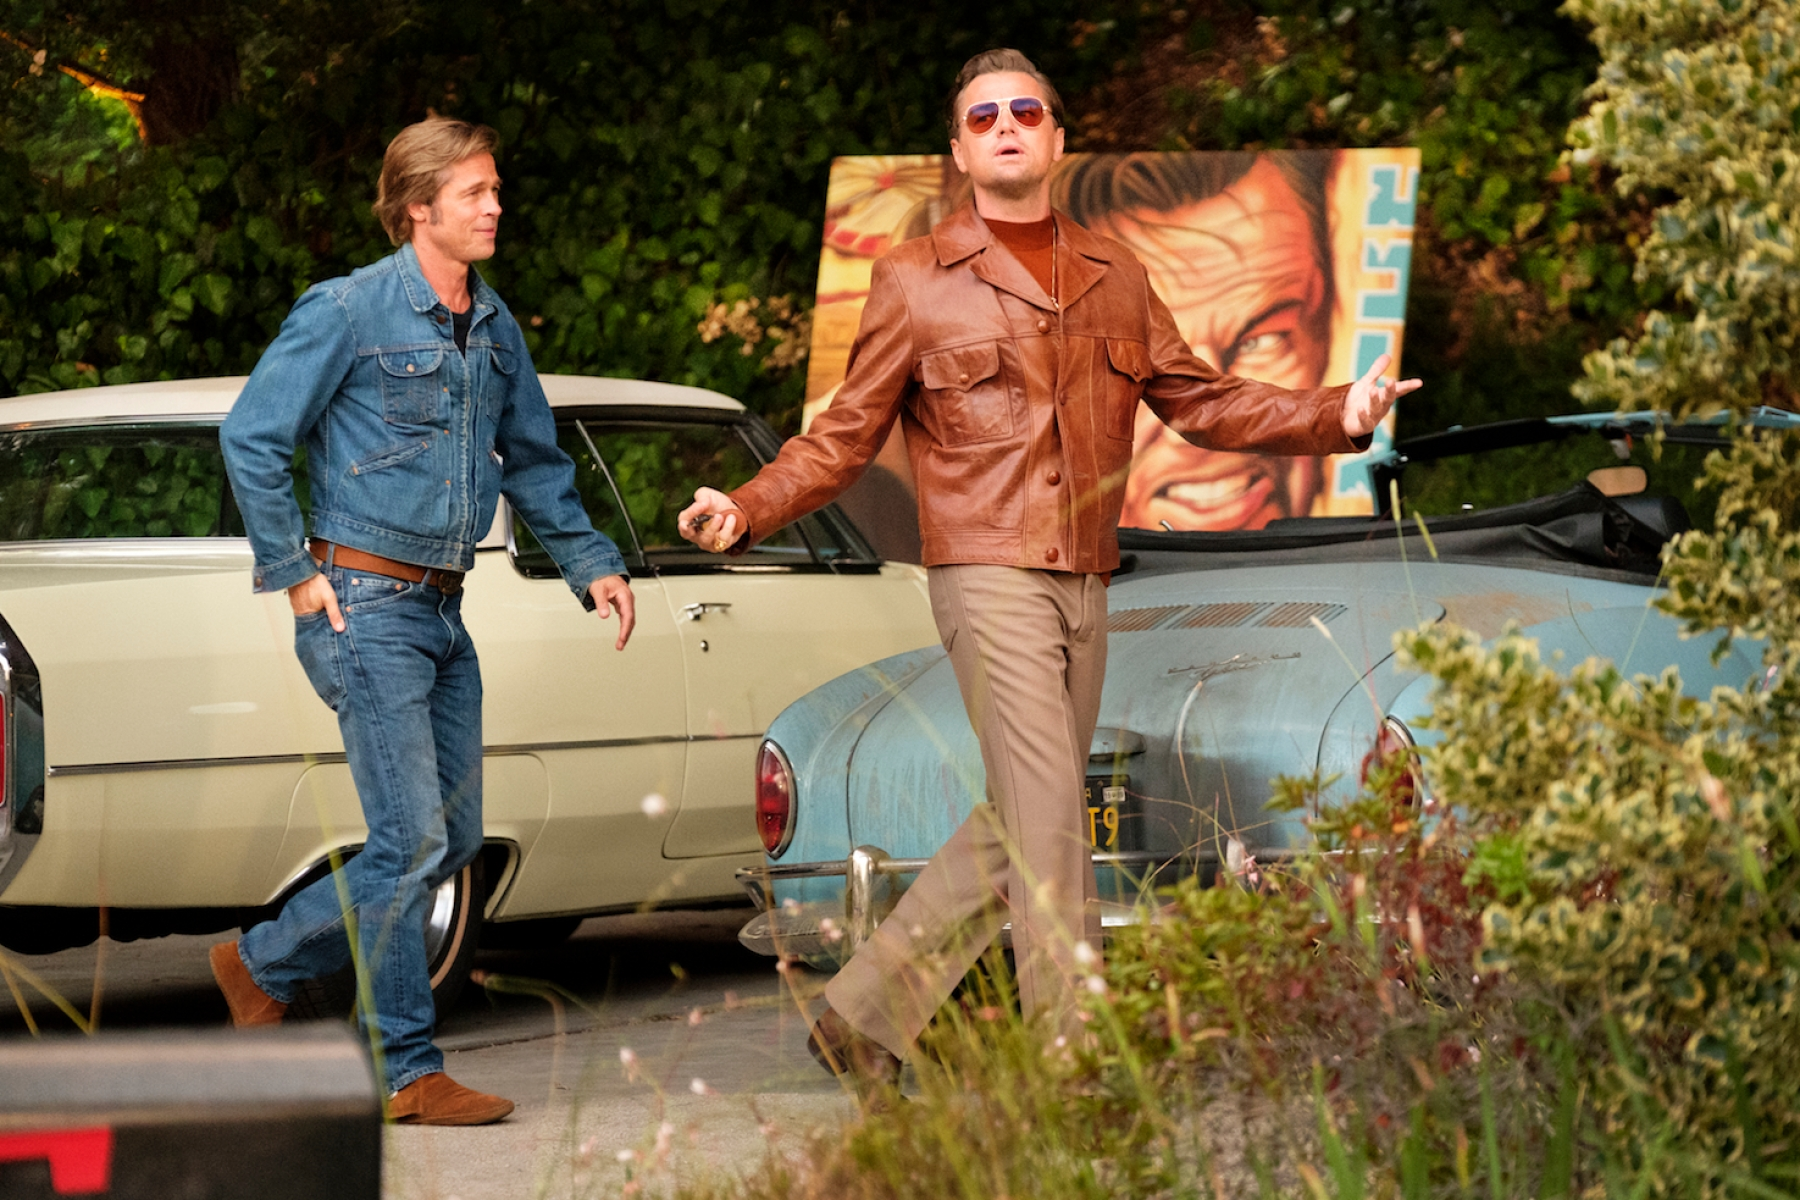 Brad Pitt and Leonardo DiCaprio star in ONCE UOPN A TIME IN HOLLYWOOD.